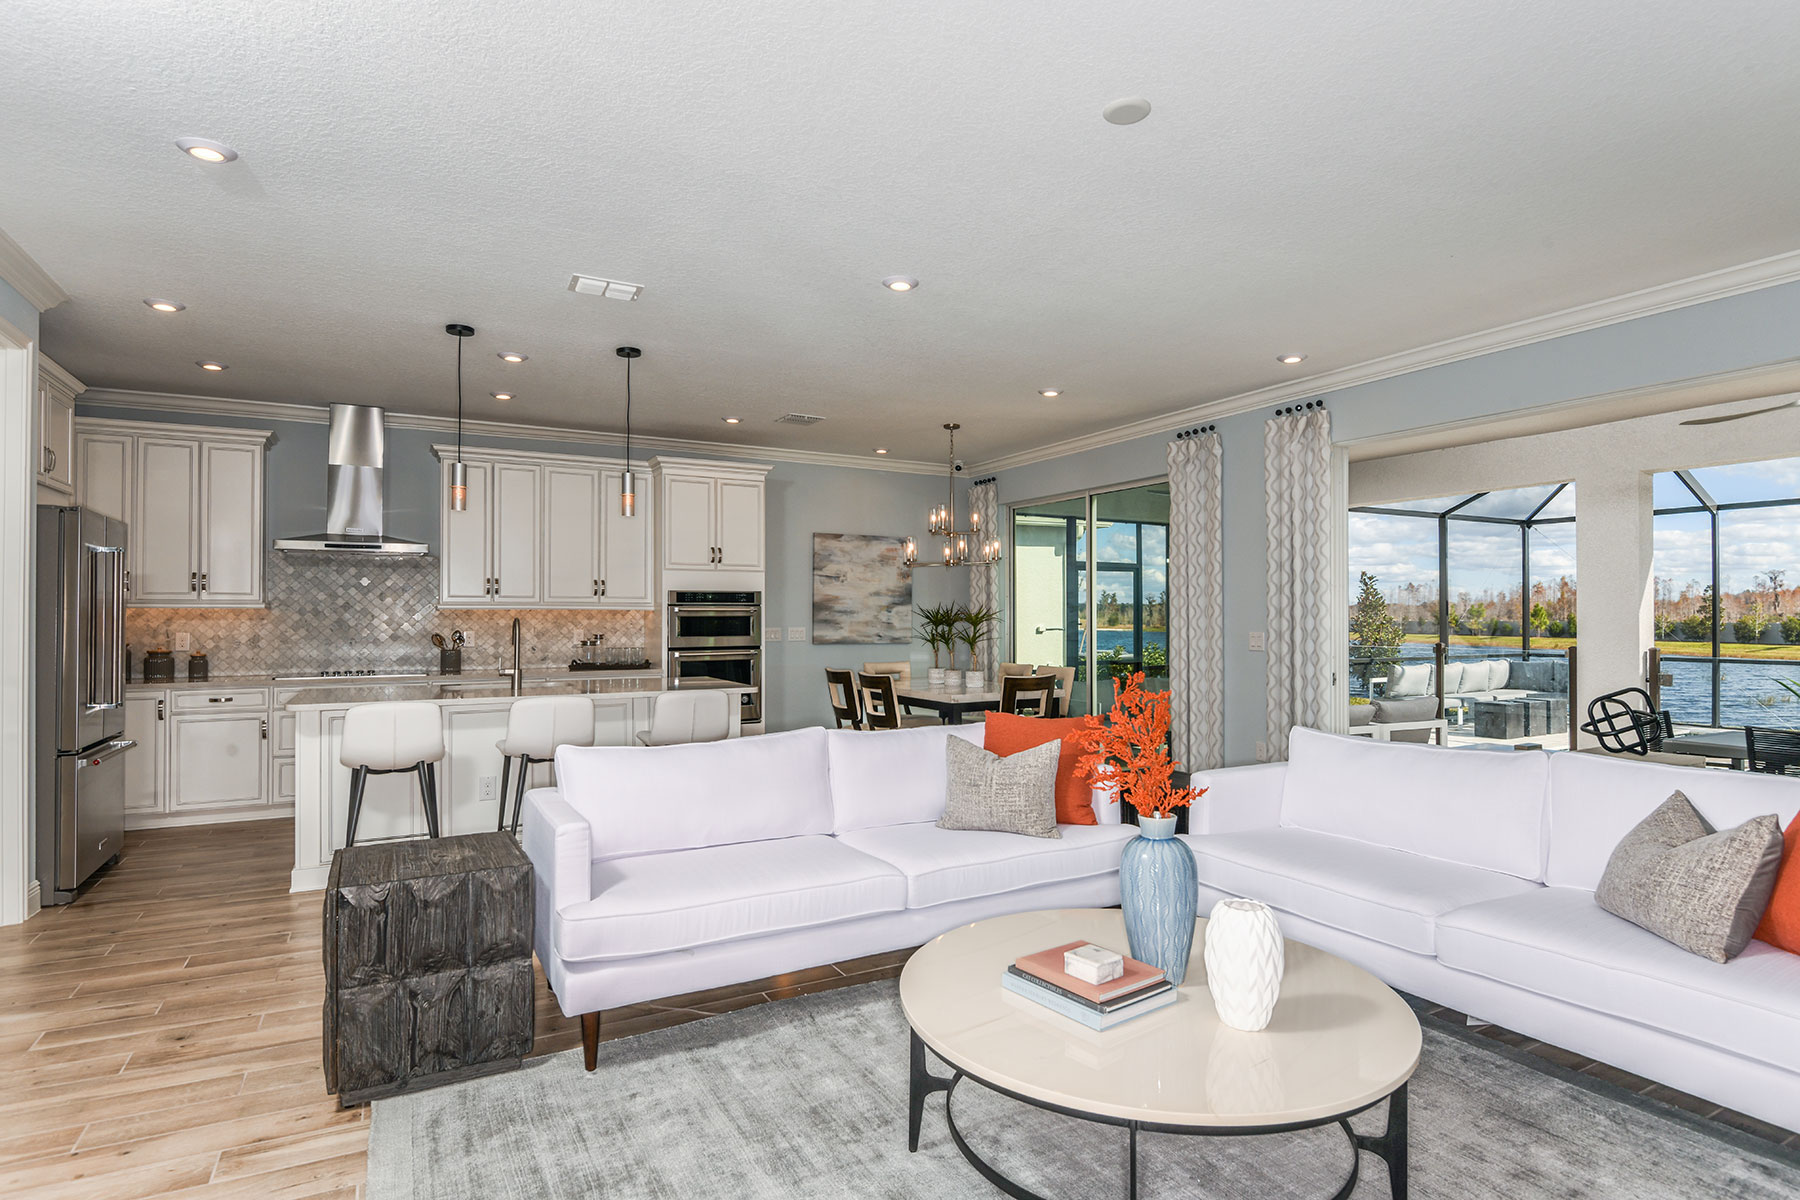 Parkview at Long Lake Ranch Greatroom in Lutz Florida by Mattamy Homes